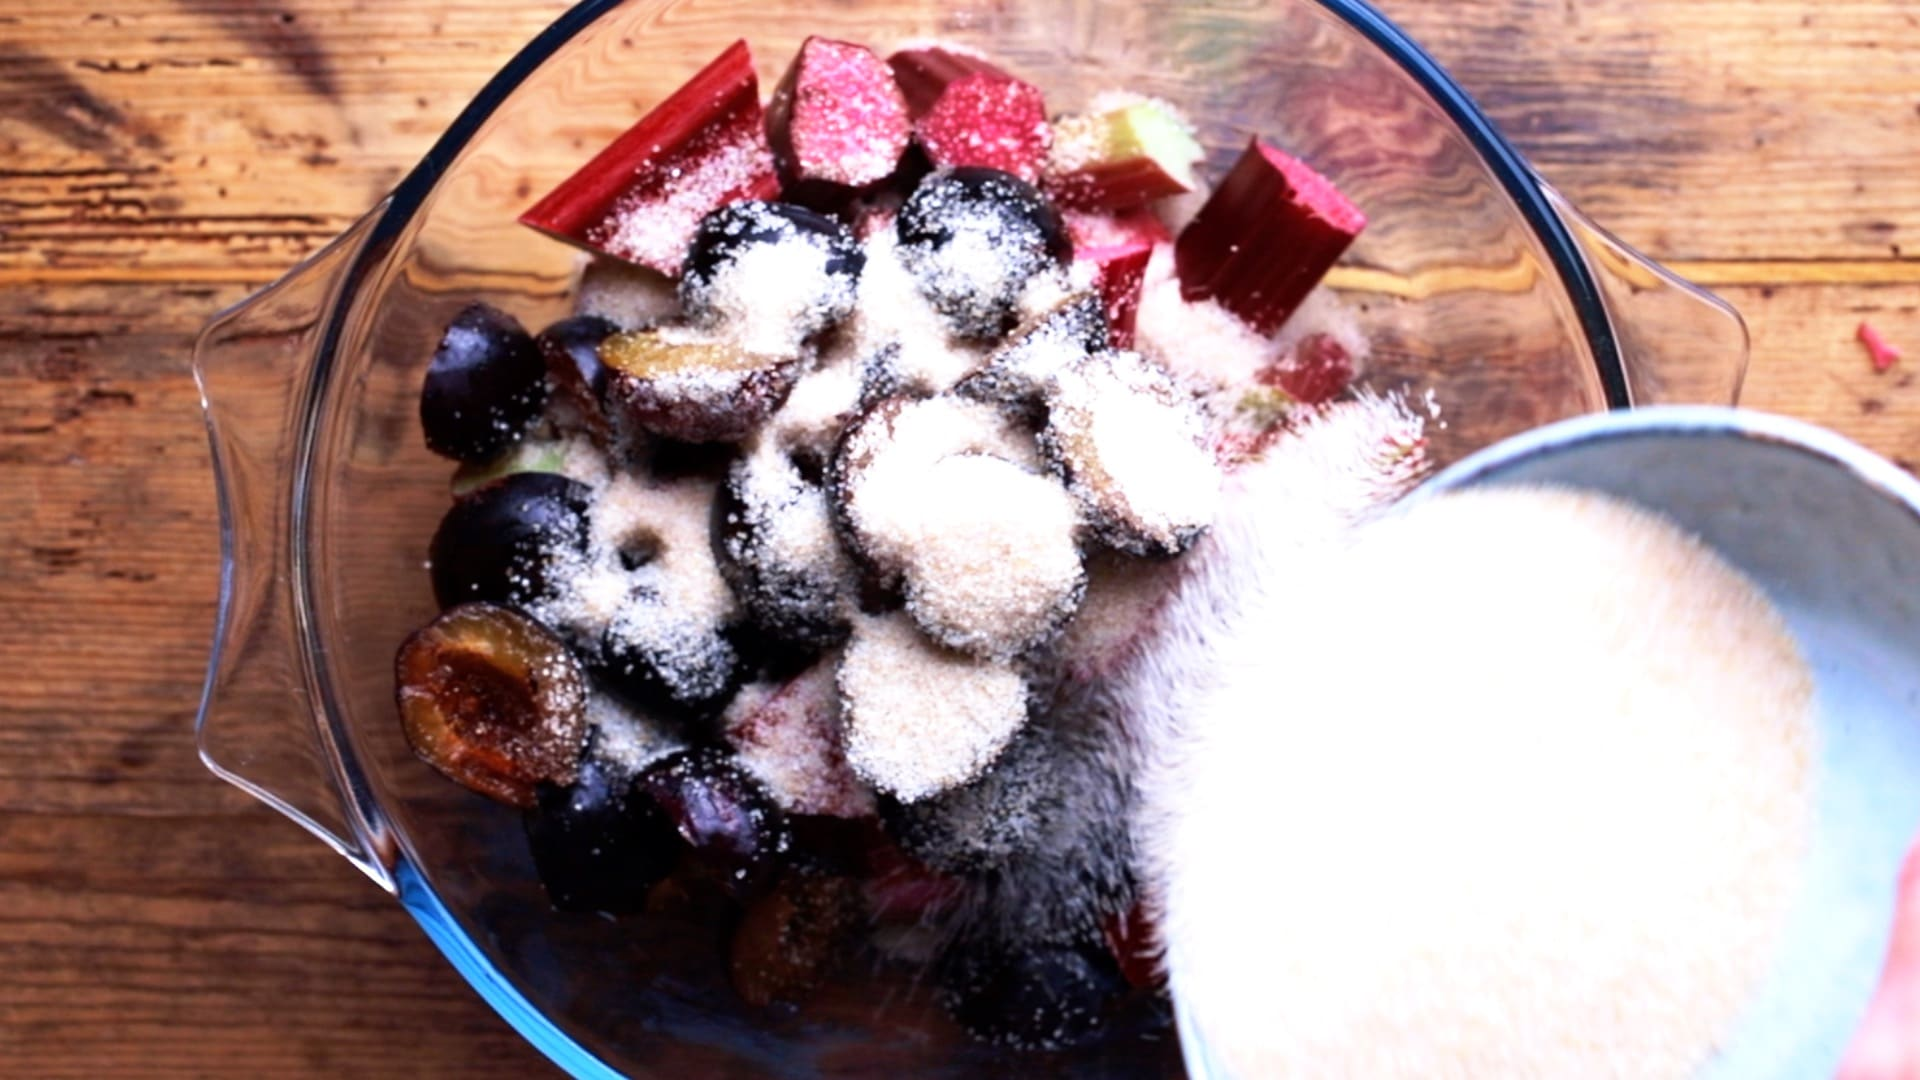 sugar being added to rhubarb and plums